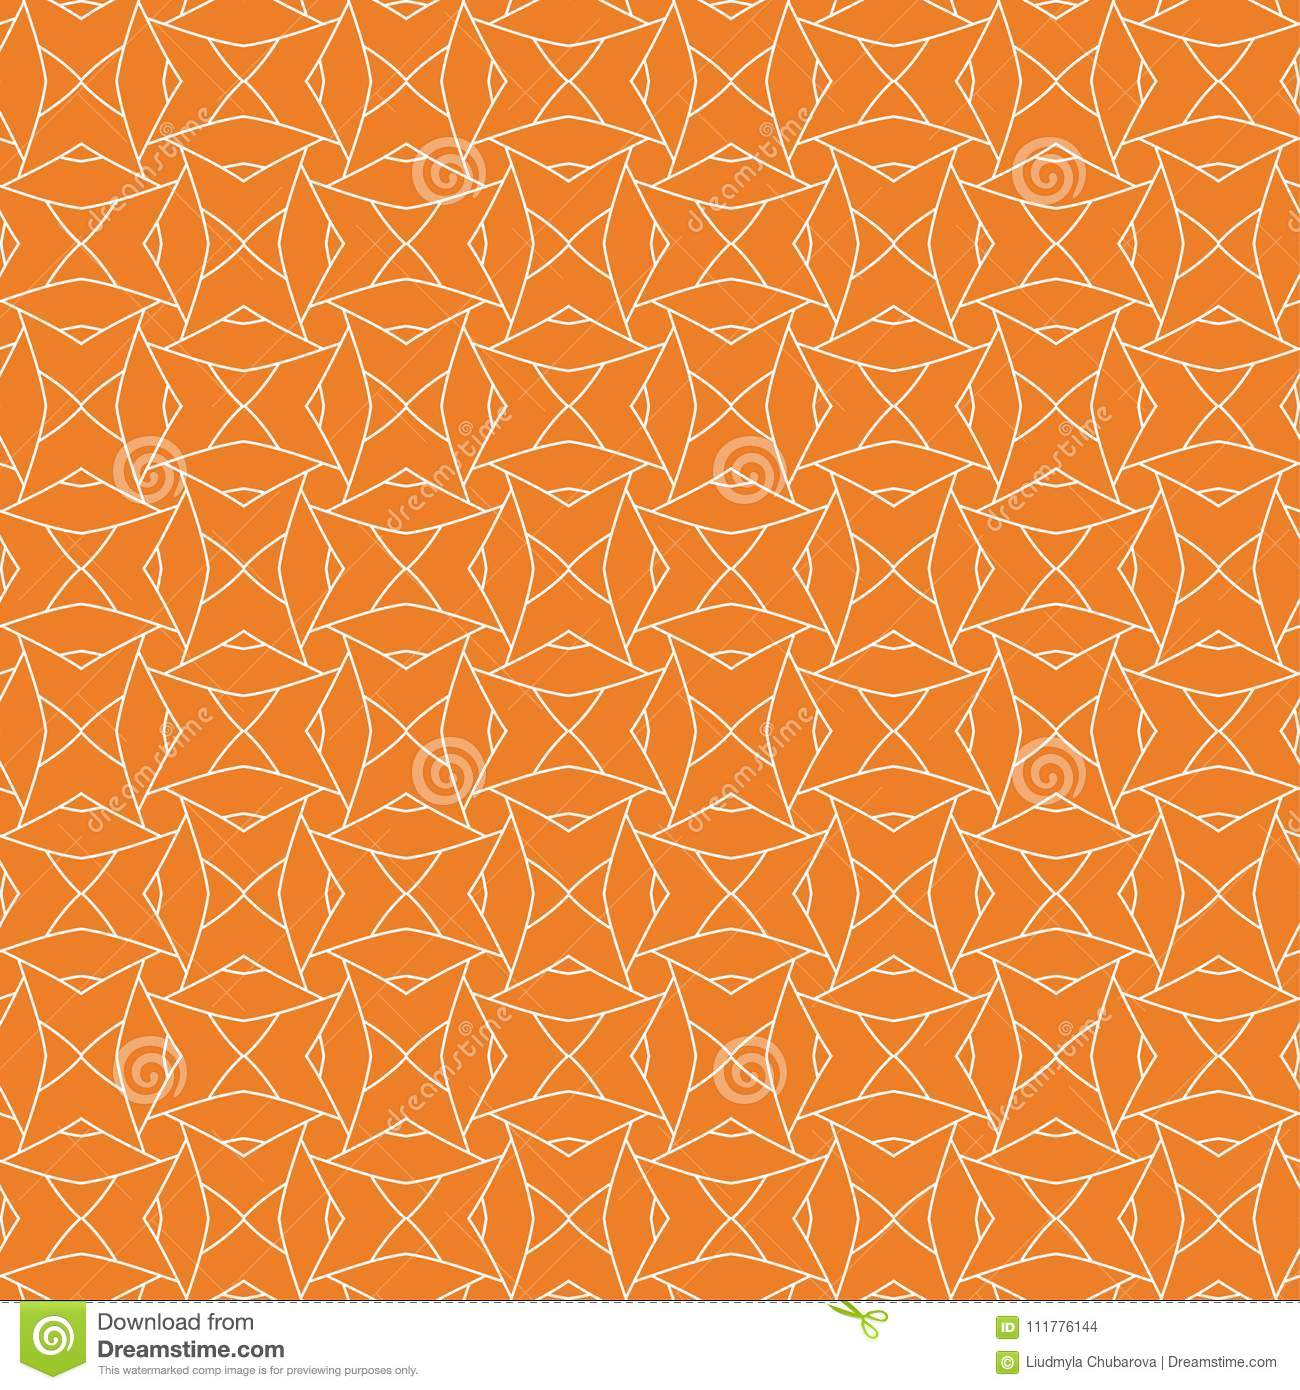 Orange geometric ornament. Seamless pattern